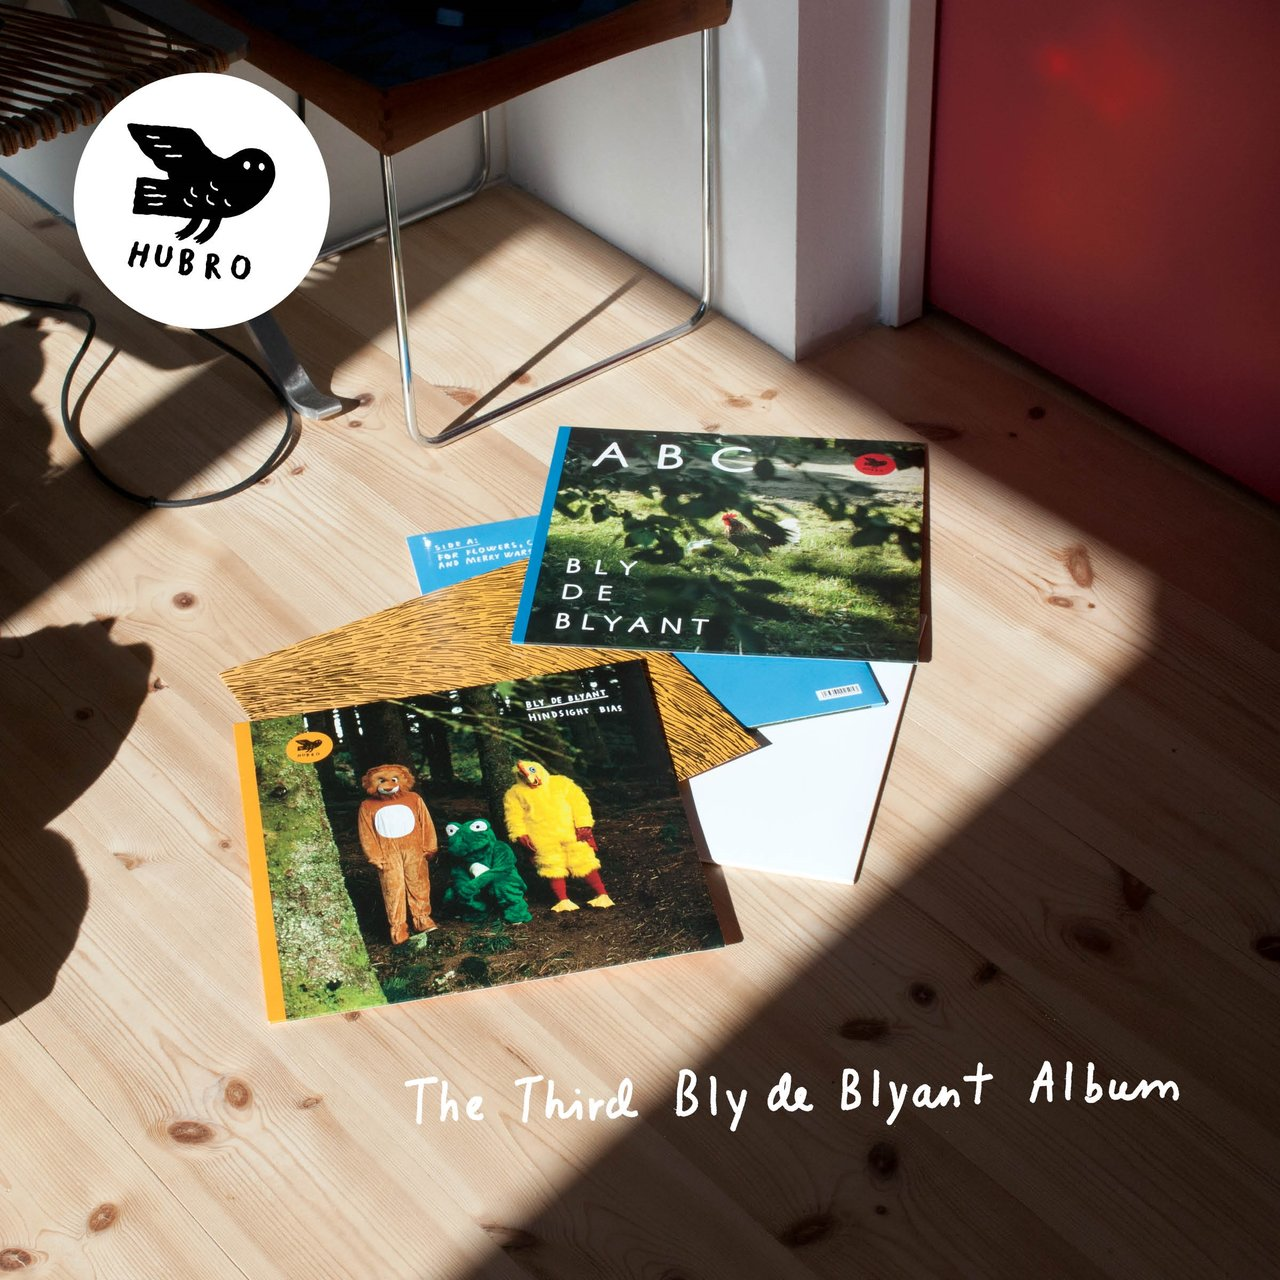 The Third Bly de Blyant Album (feat. Ches Smith)